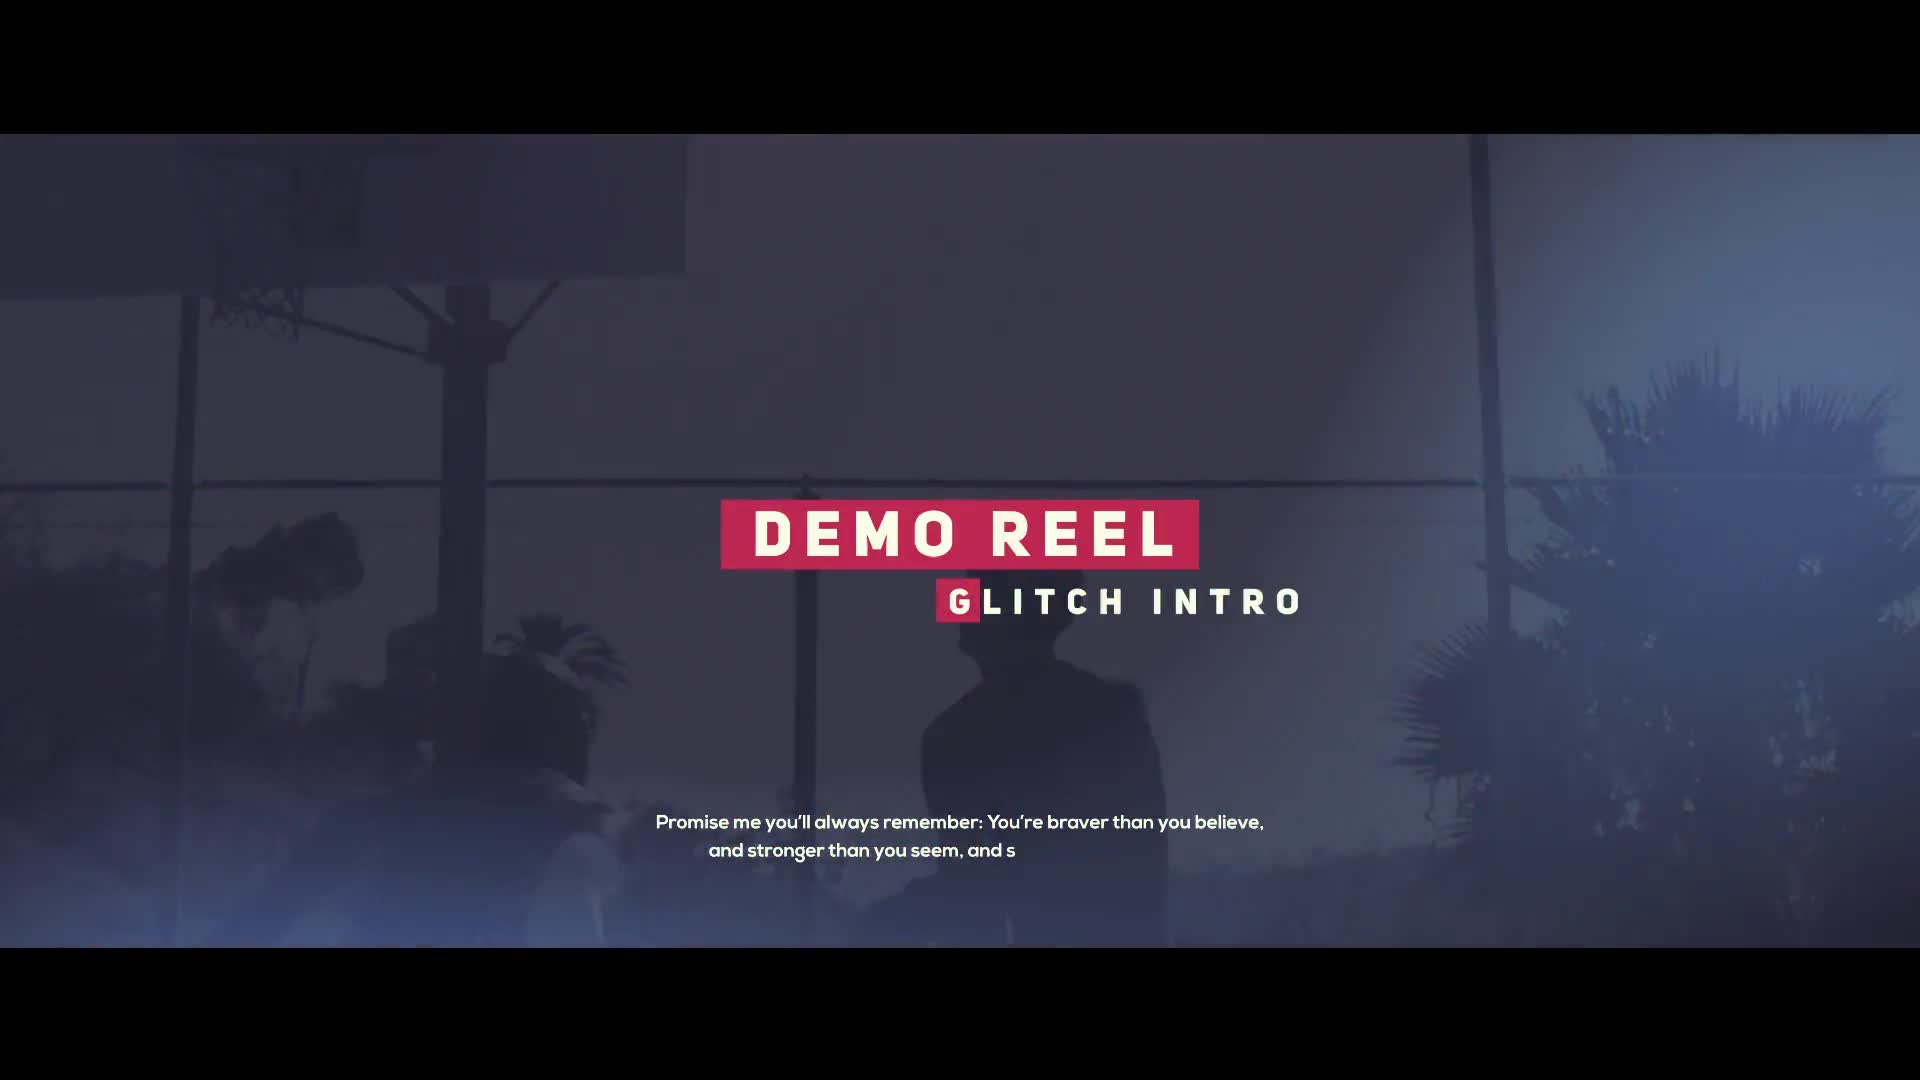 Glitch Demo Reel - Download Videohive 20415416